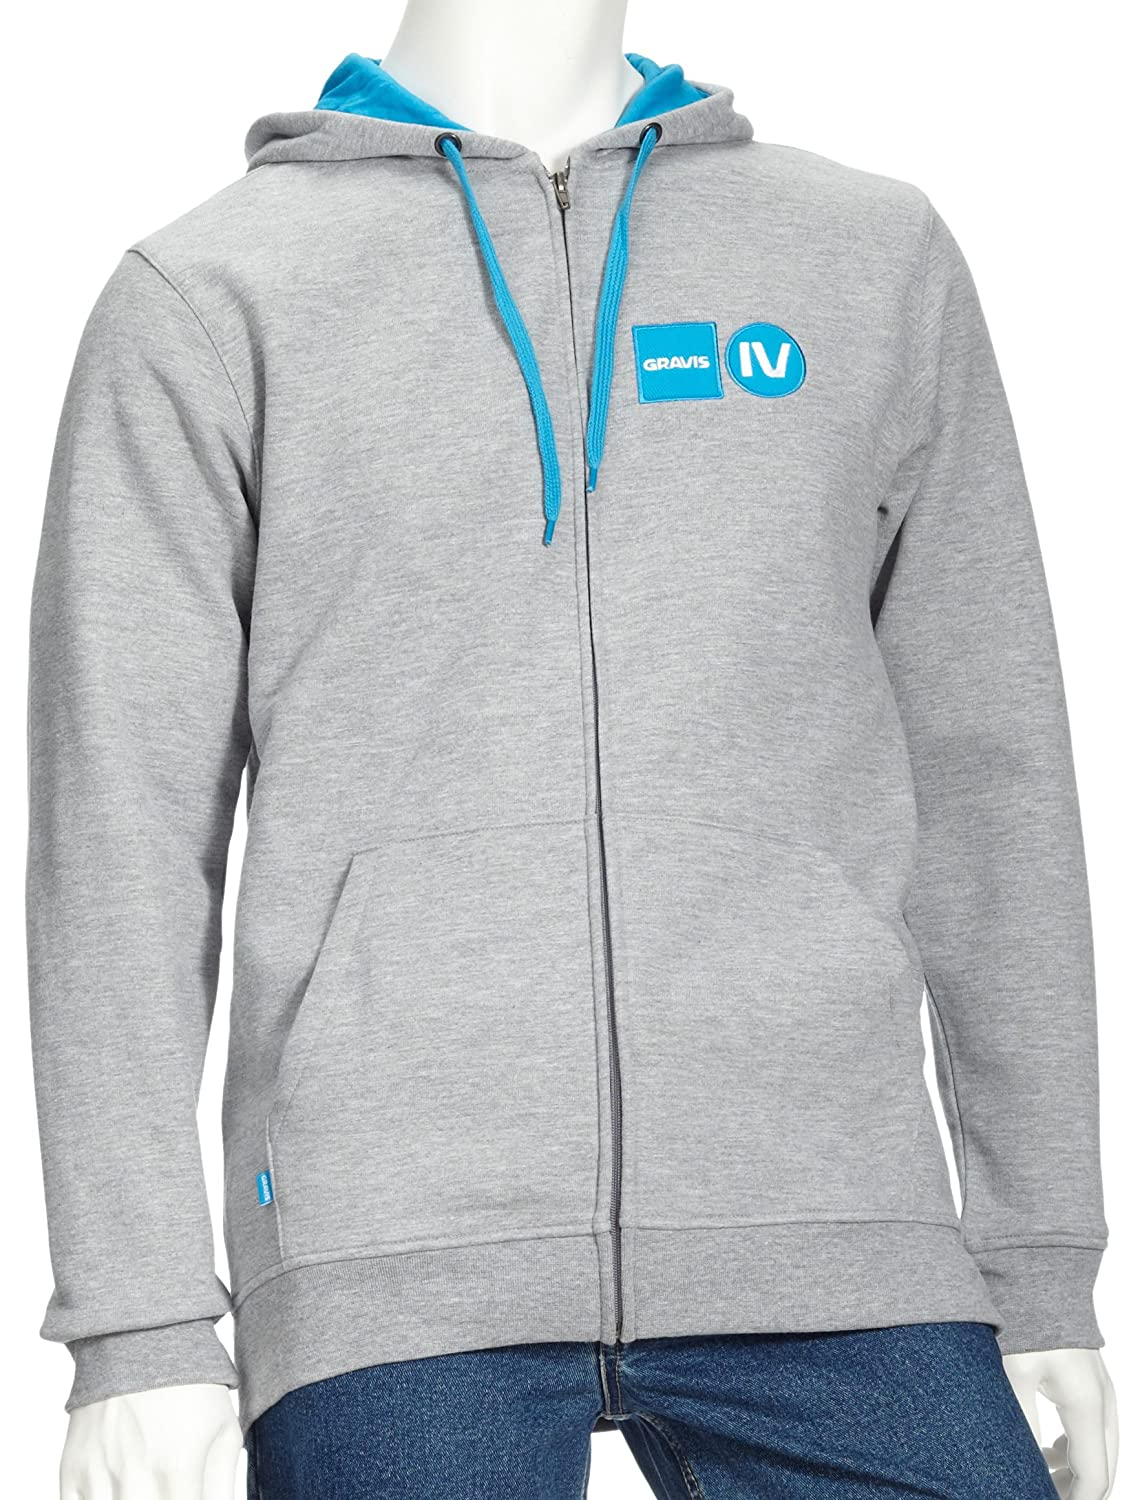 Gravis Men's ziphoodie DNA EU